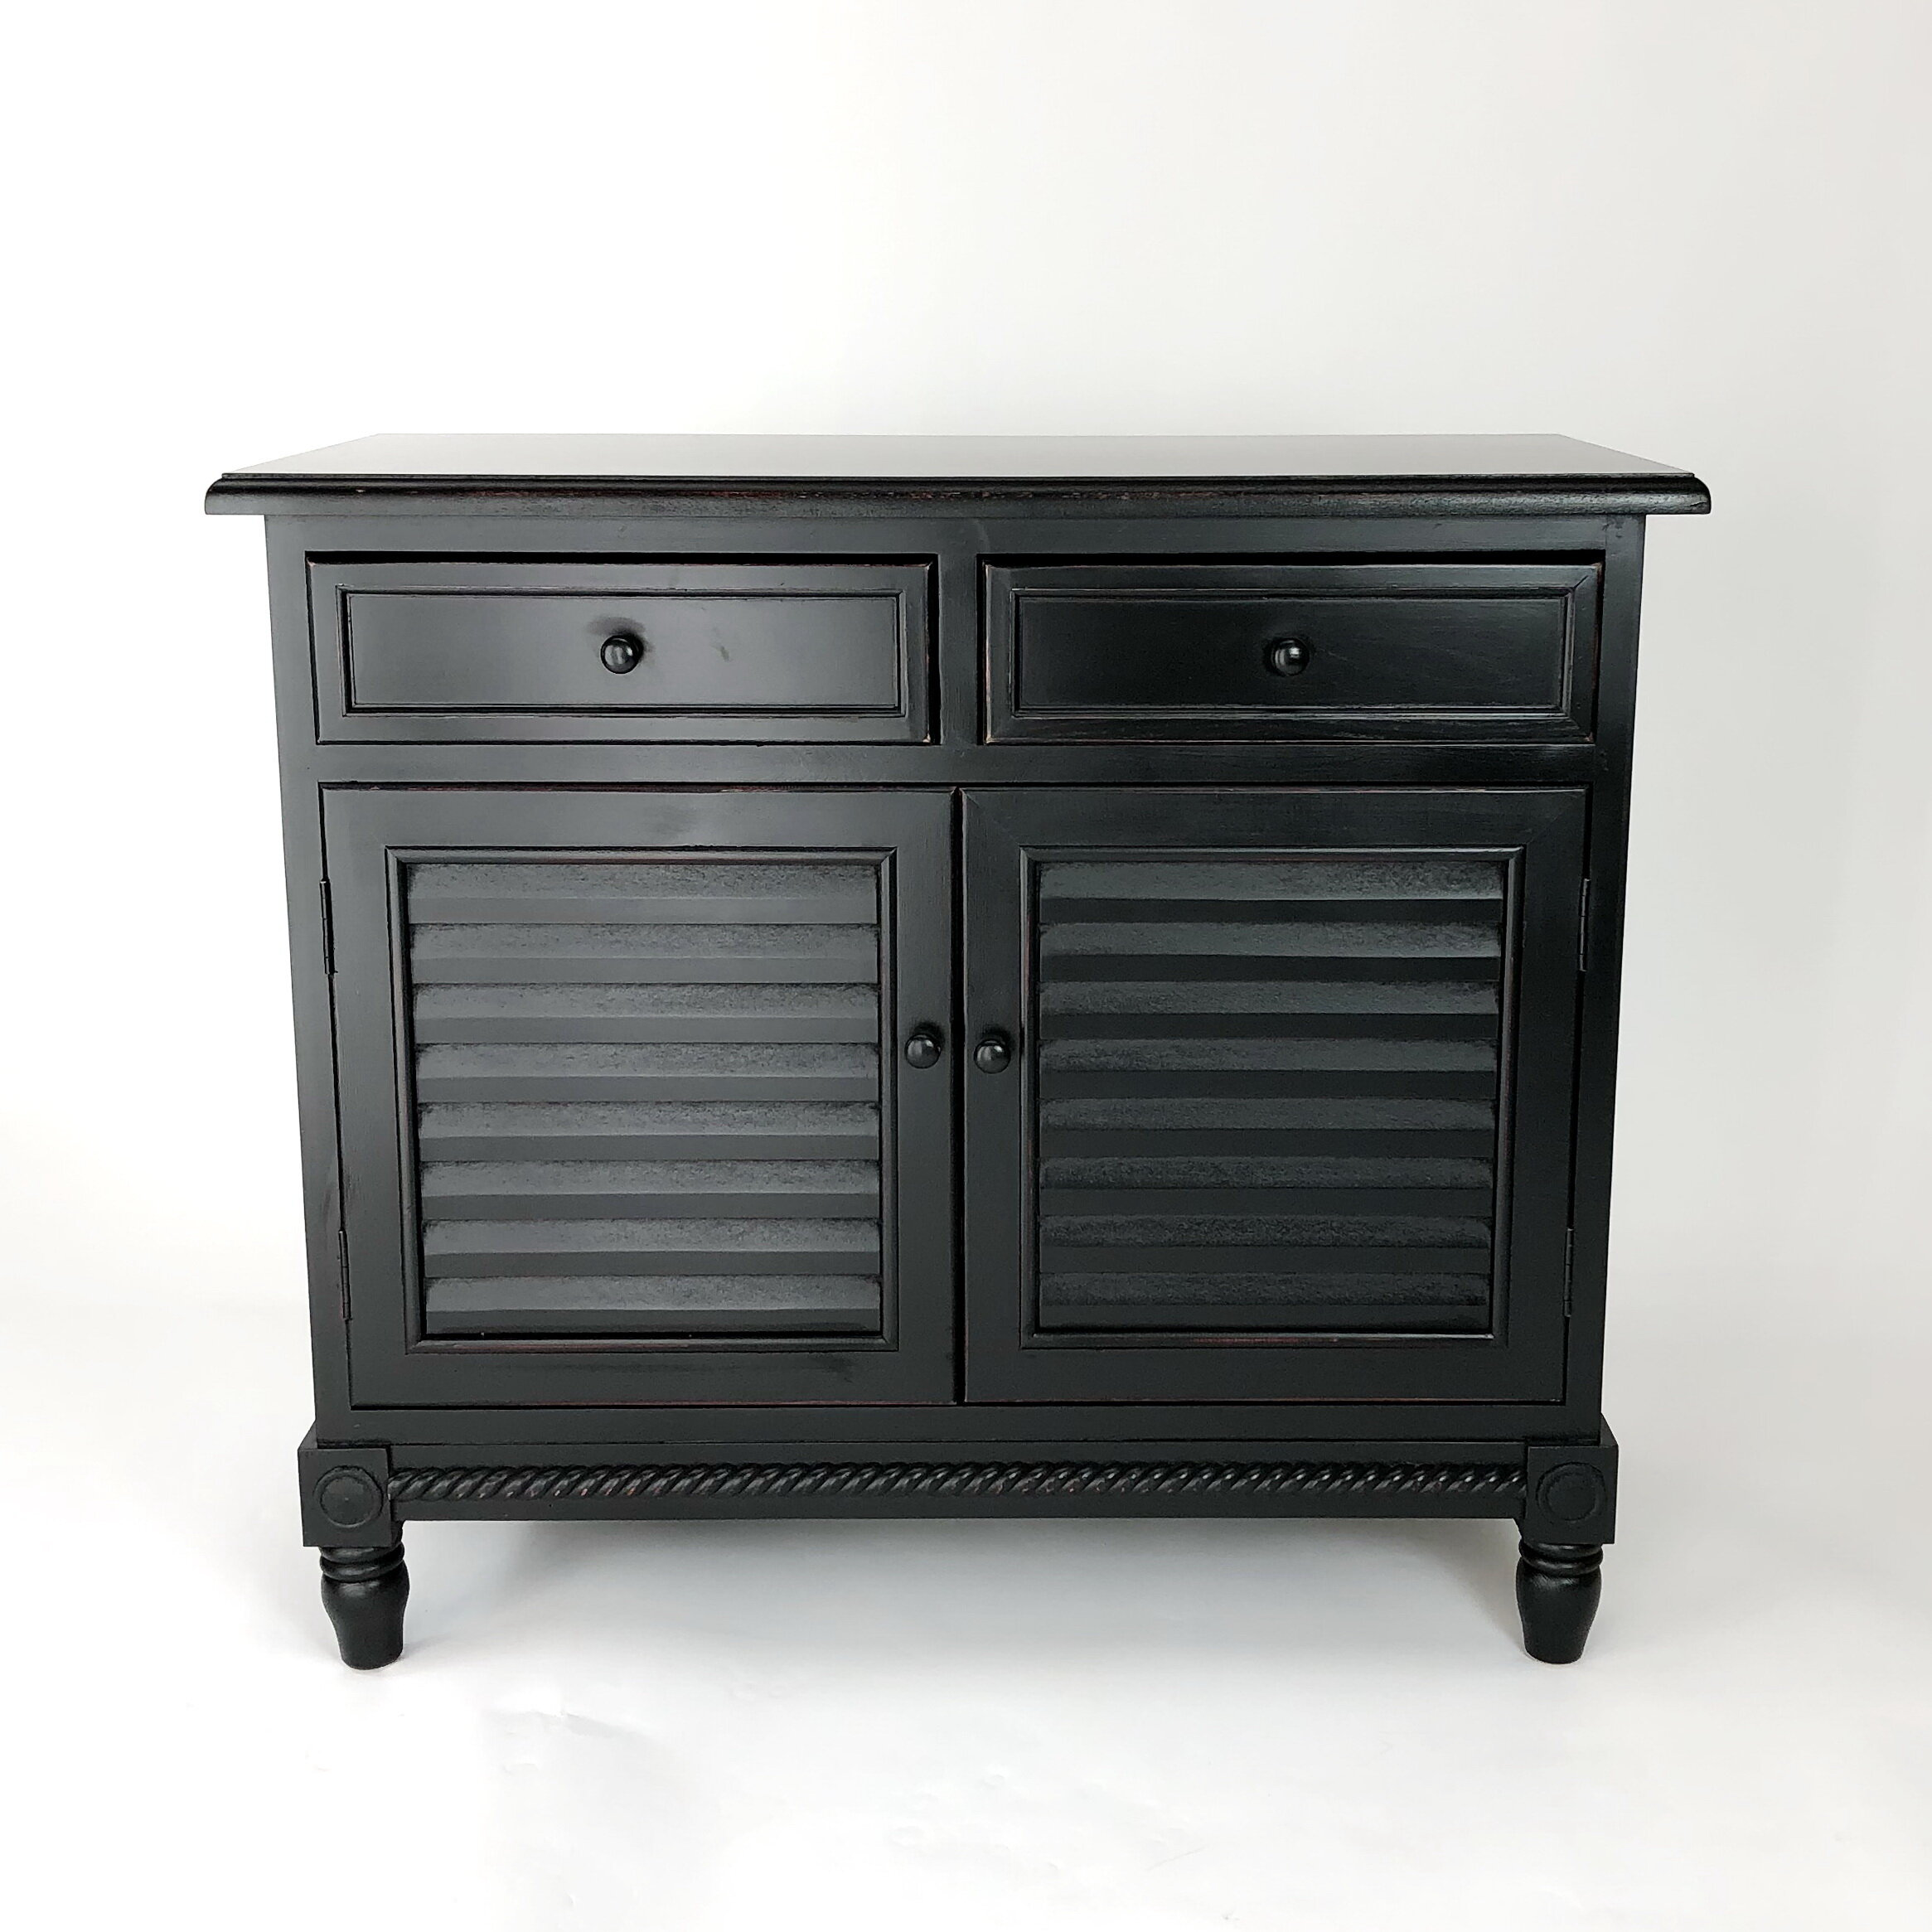 Highland Dunes Wenlock 2 Door Accent Cabinet & Reviews | Wayfair